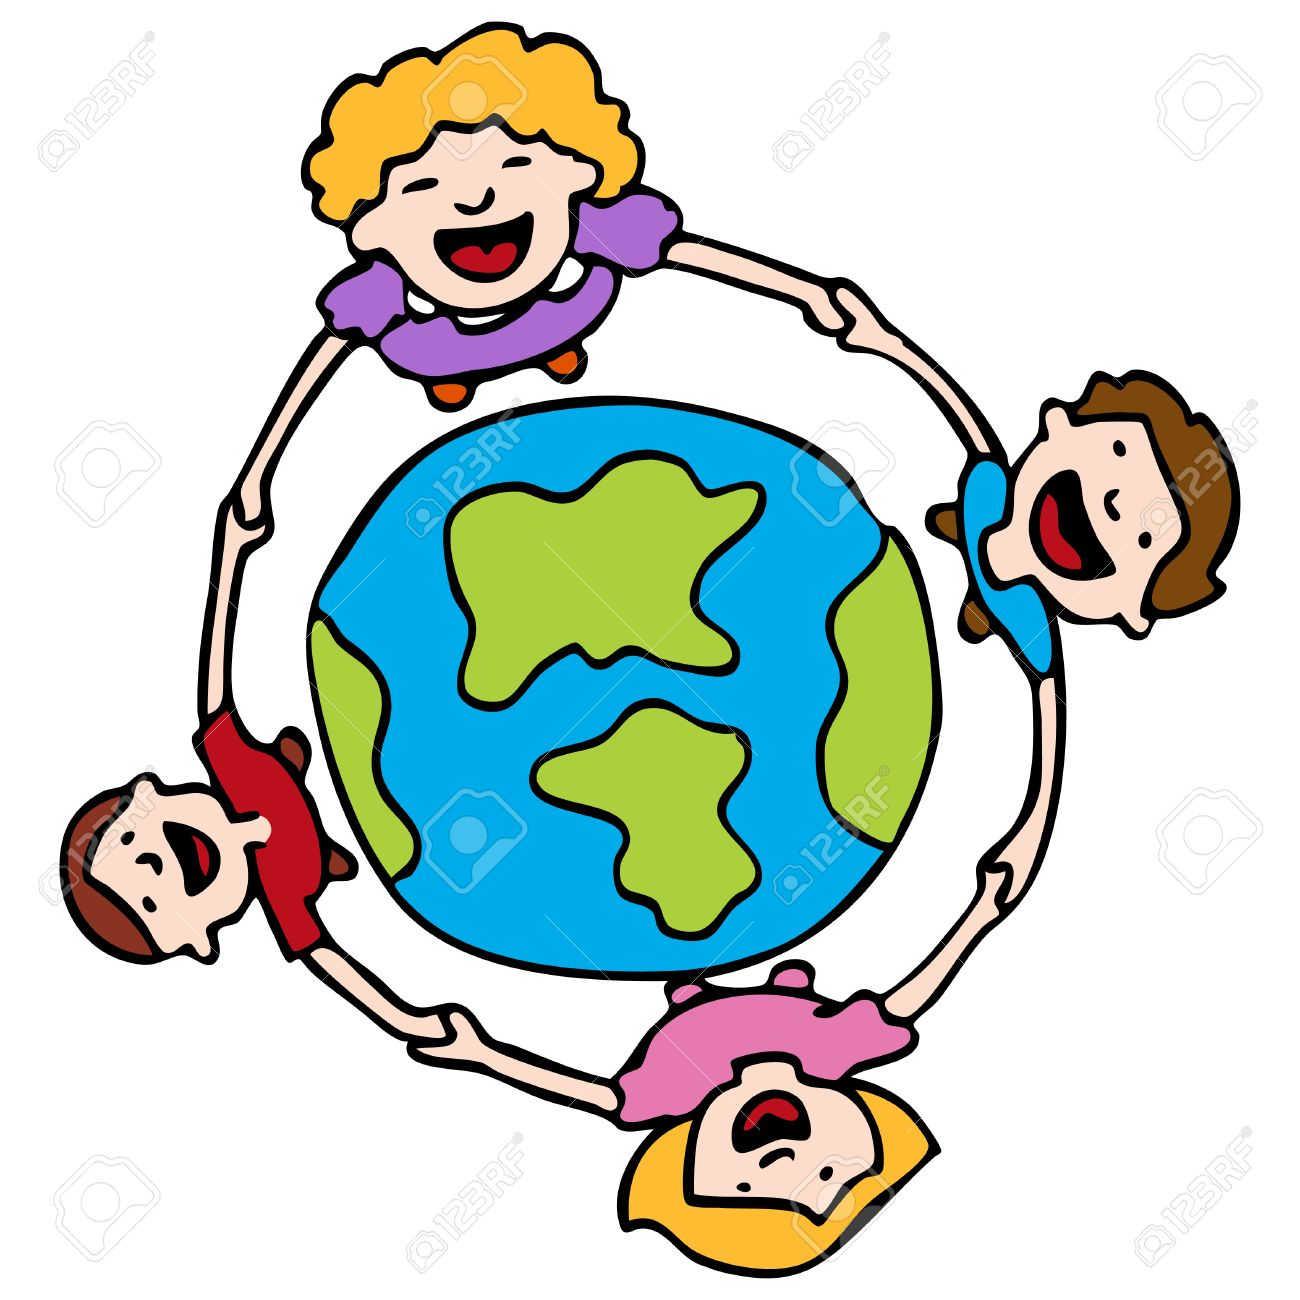 An image of a children holding hands around the Earth. Stock Vector - 8186952